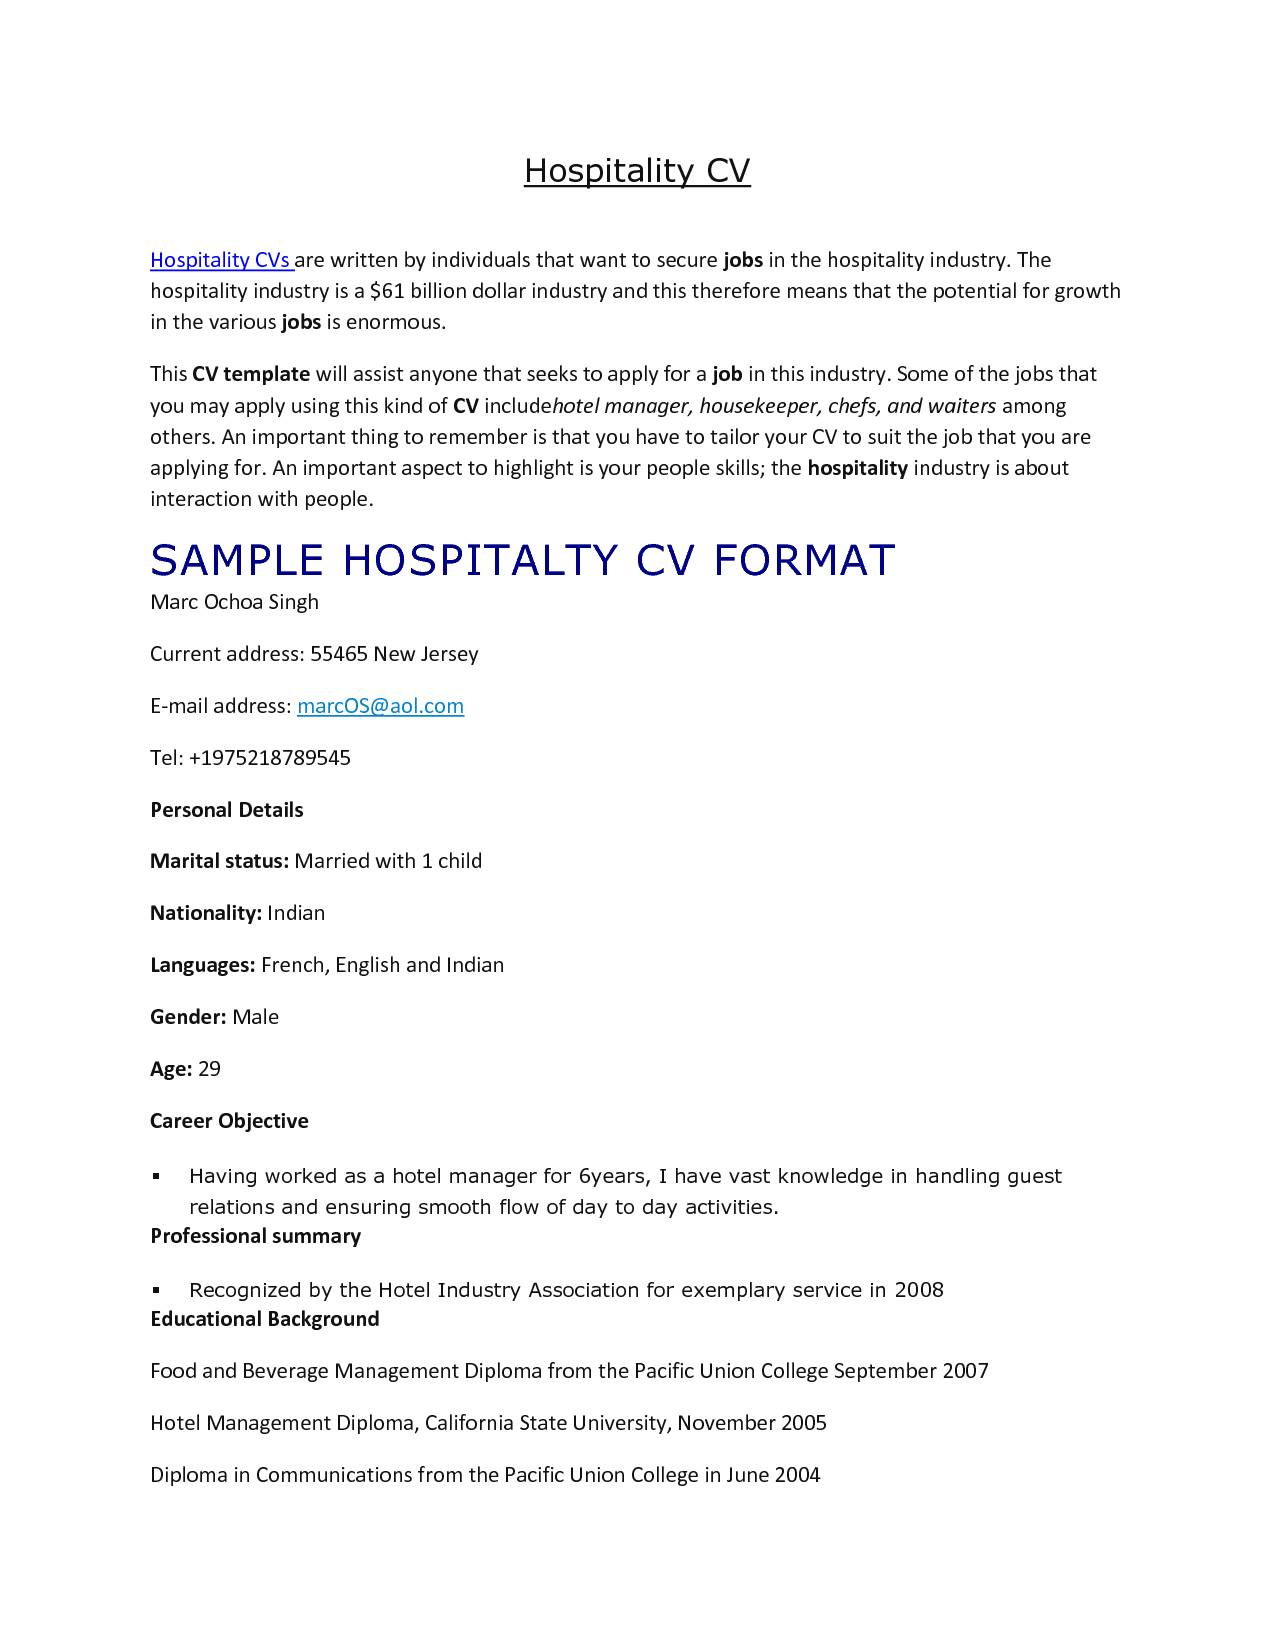 Hotel Management Resume Templates